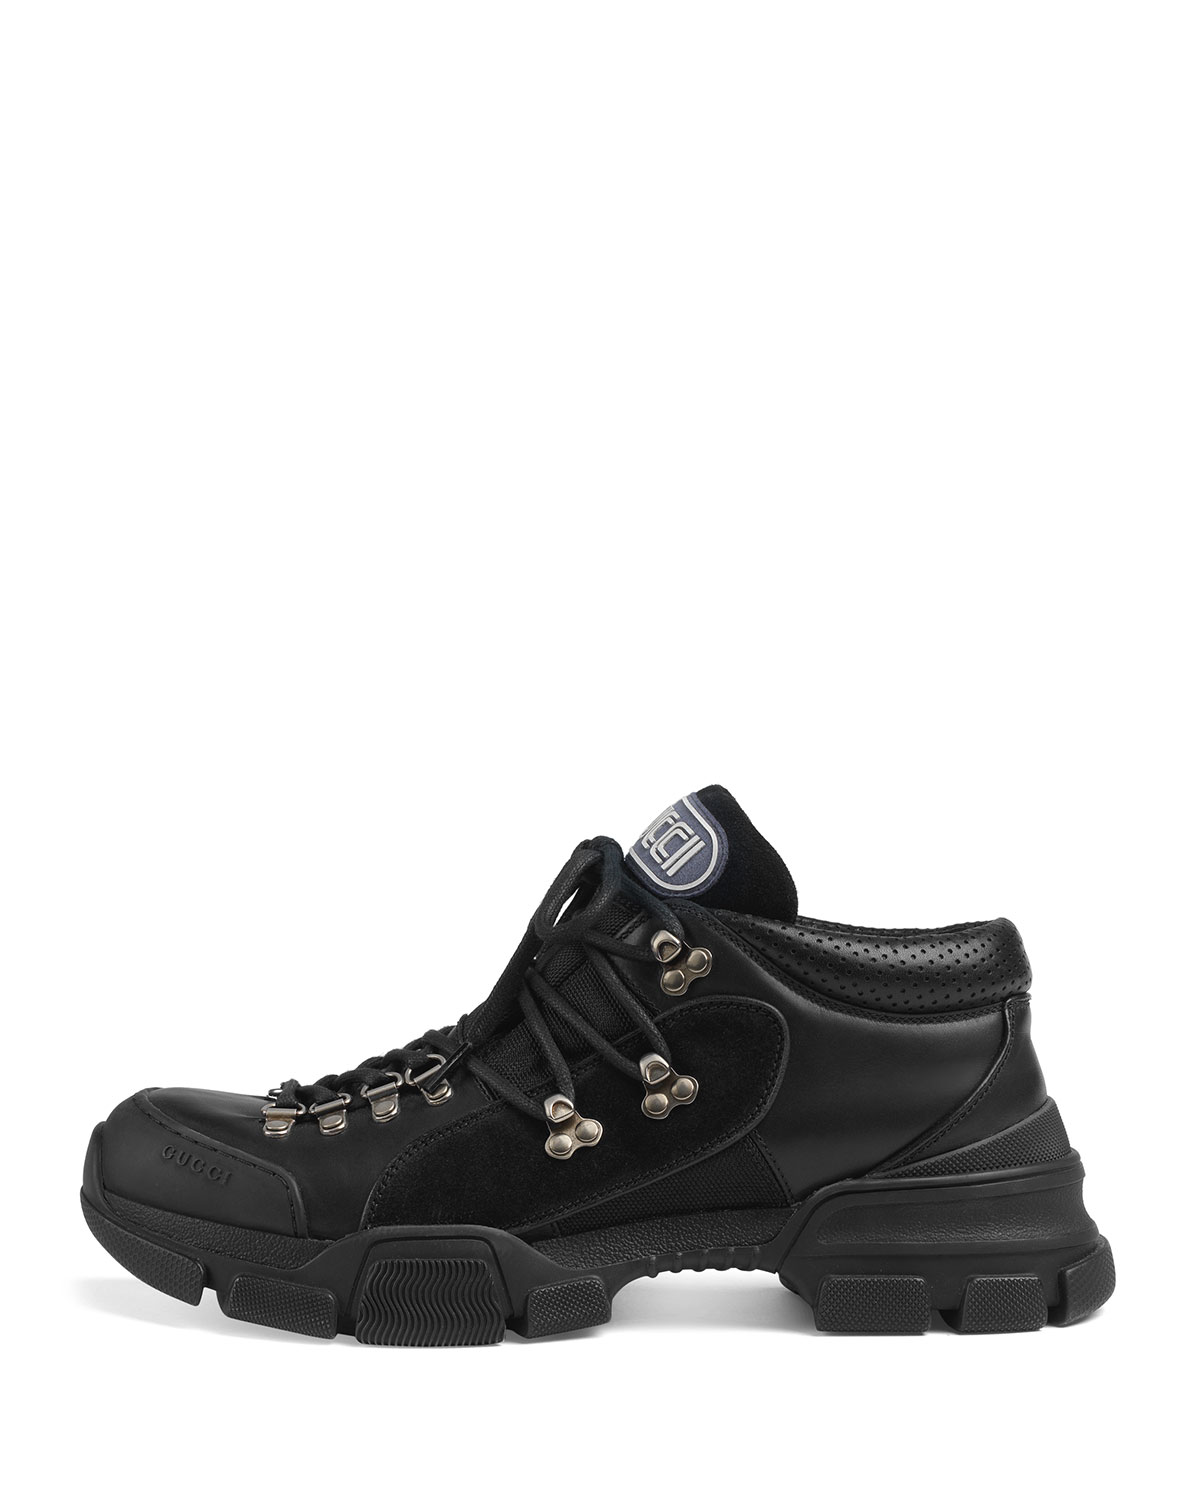 692851c44d46ea Gucci Leather and Original GG Trekking Boot | Neiman Marcus